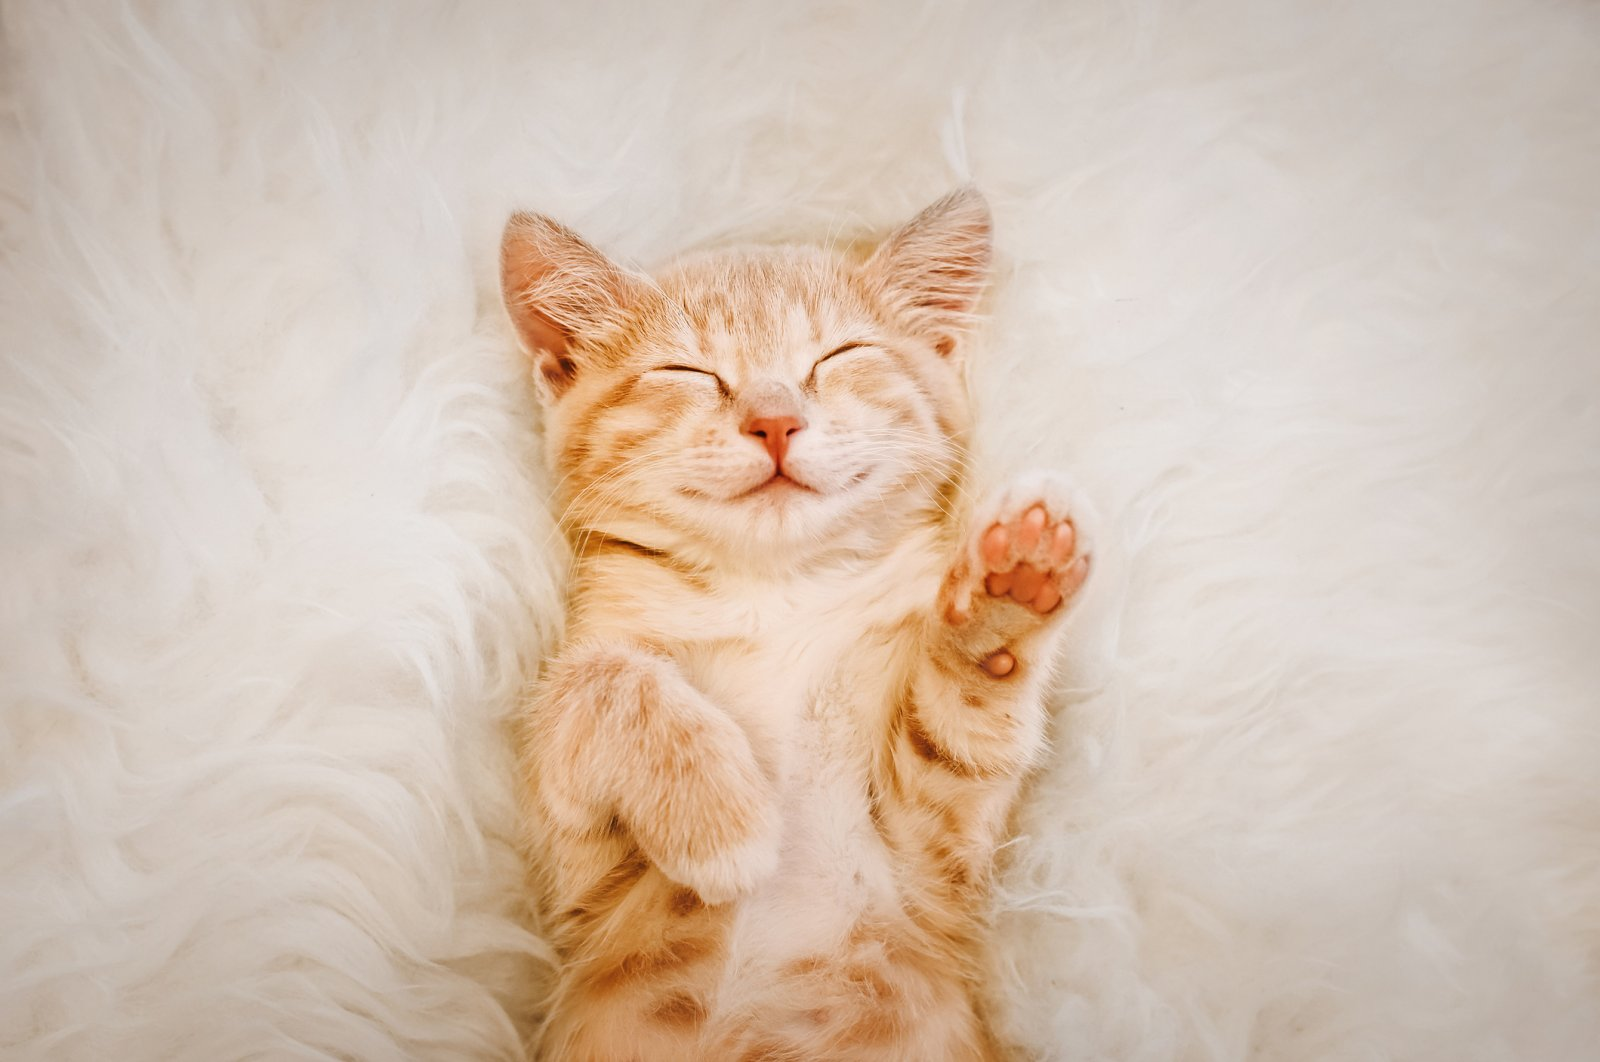 To get a good night's beauty sleep, make sure your sleeping area has the optimal conditions. (iStock Photo)